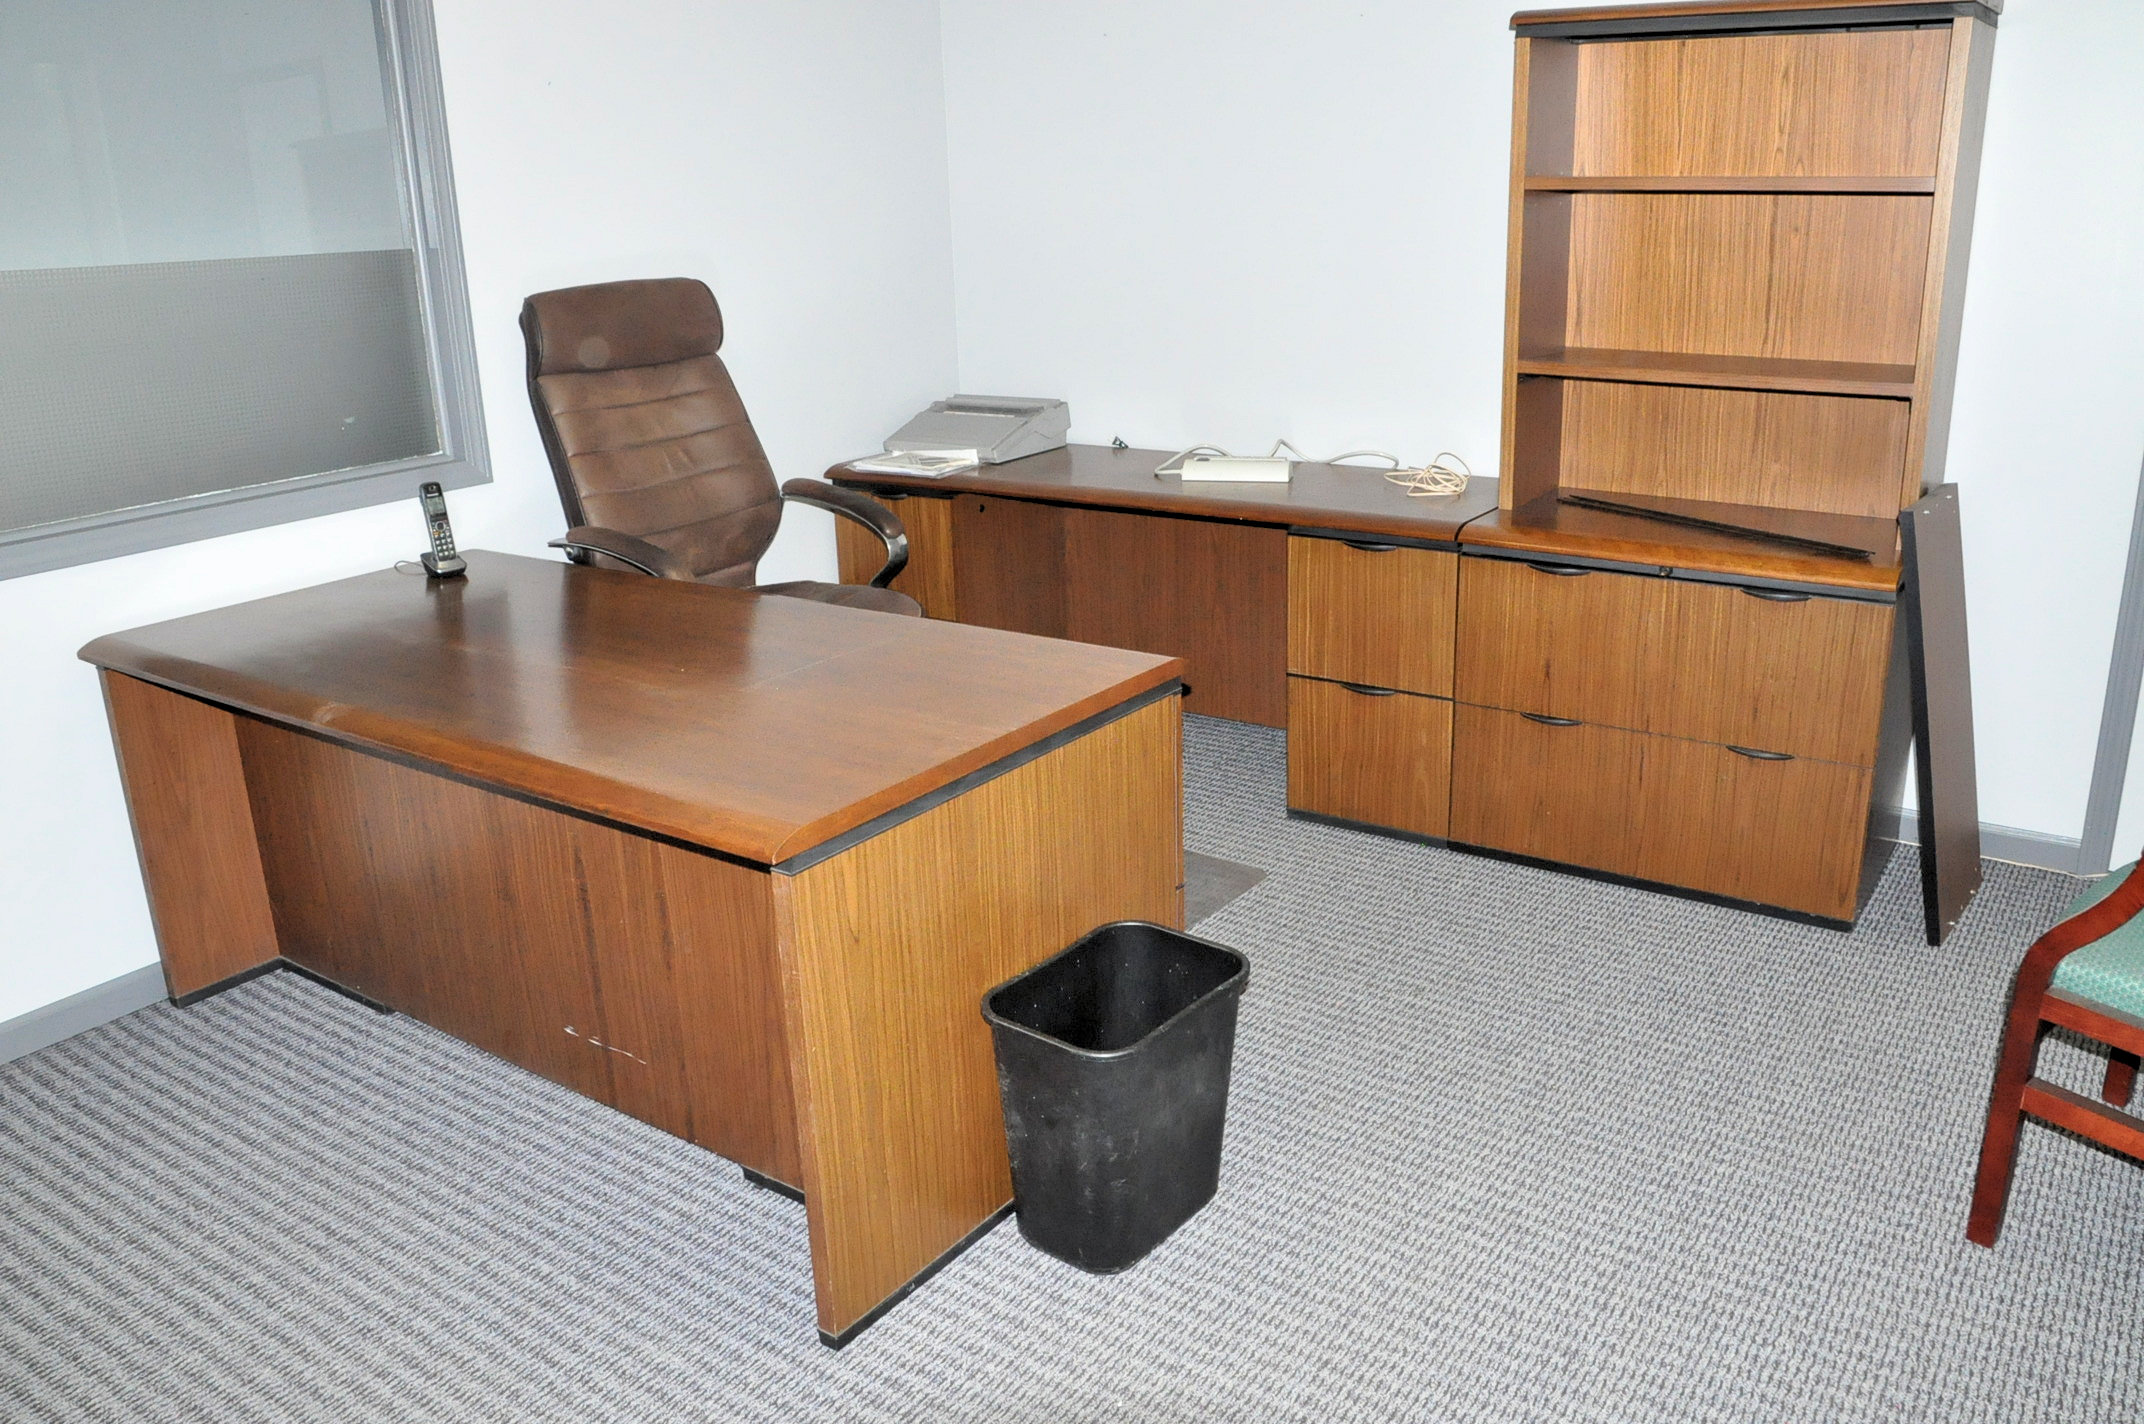 Desk, Credenza, (3) Chairs and Vanity